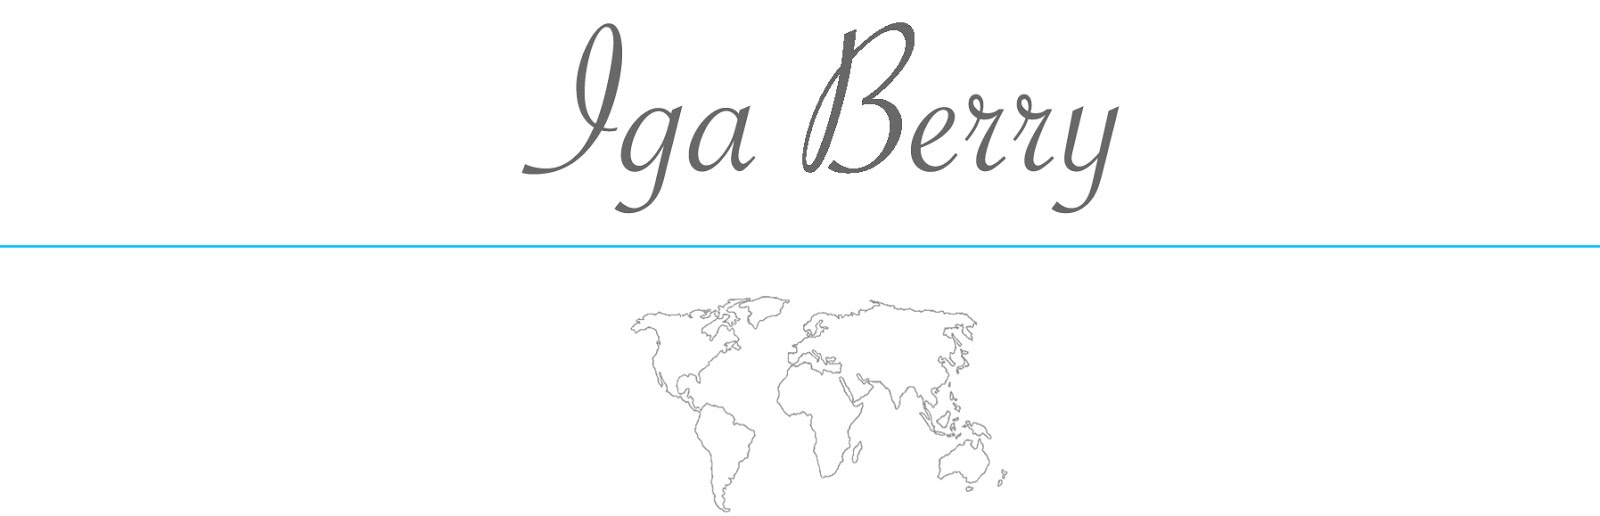 Iga Berry Inspiring UK Daily Travel Weddings Lifestyle